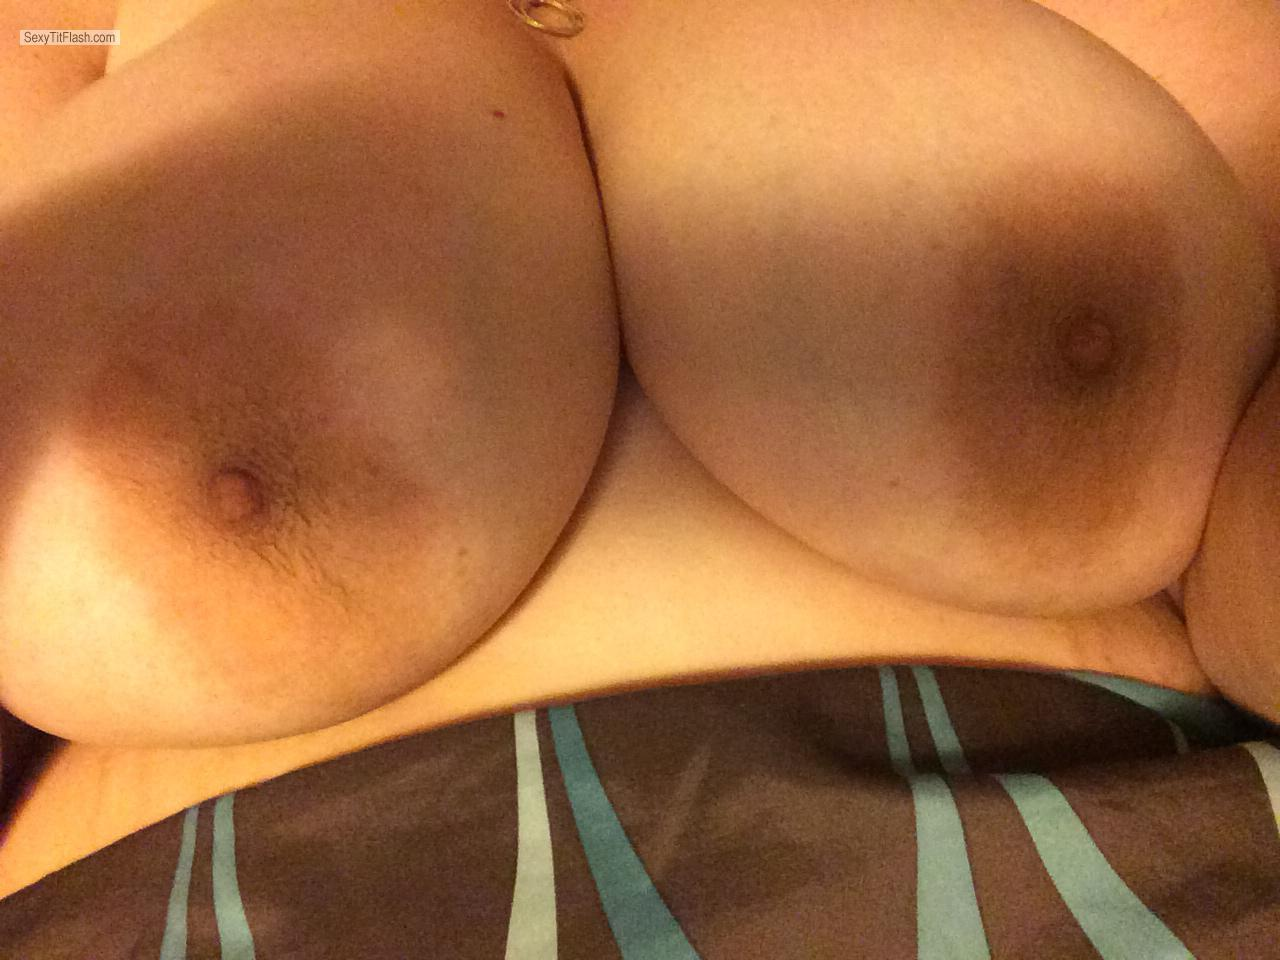 Tit Flash: My Very Big Tits By IPhone (Selfie) - LovelyTitz from United States